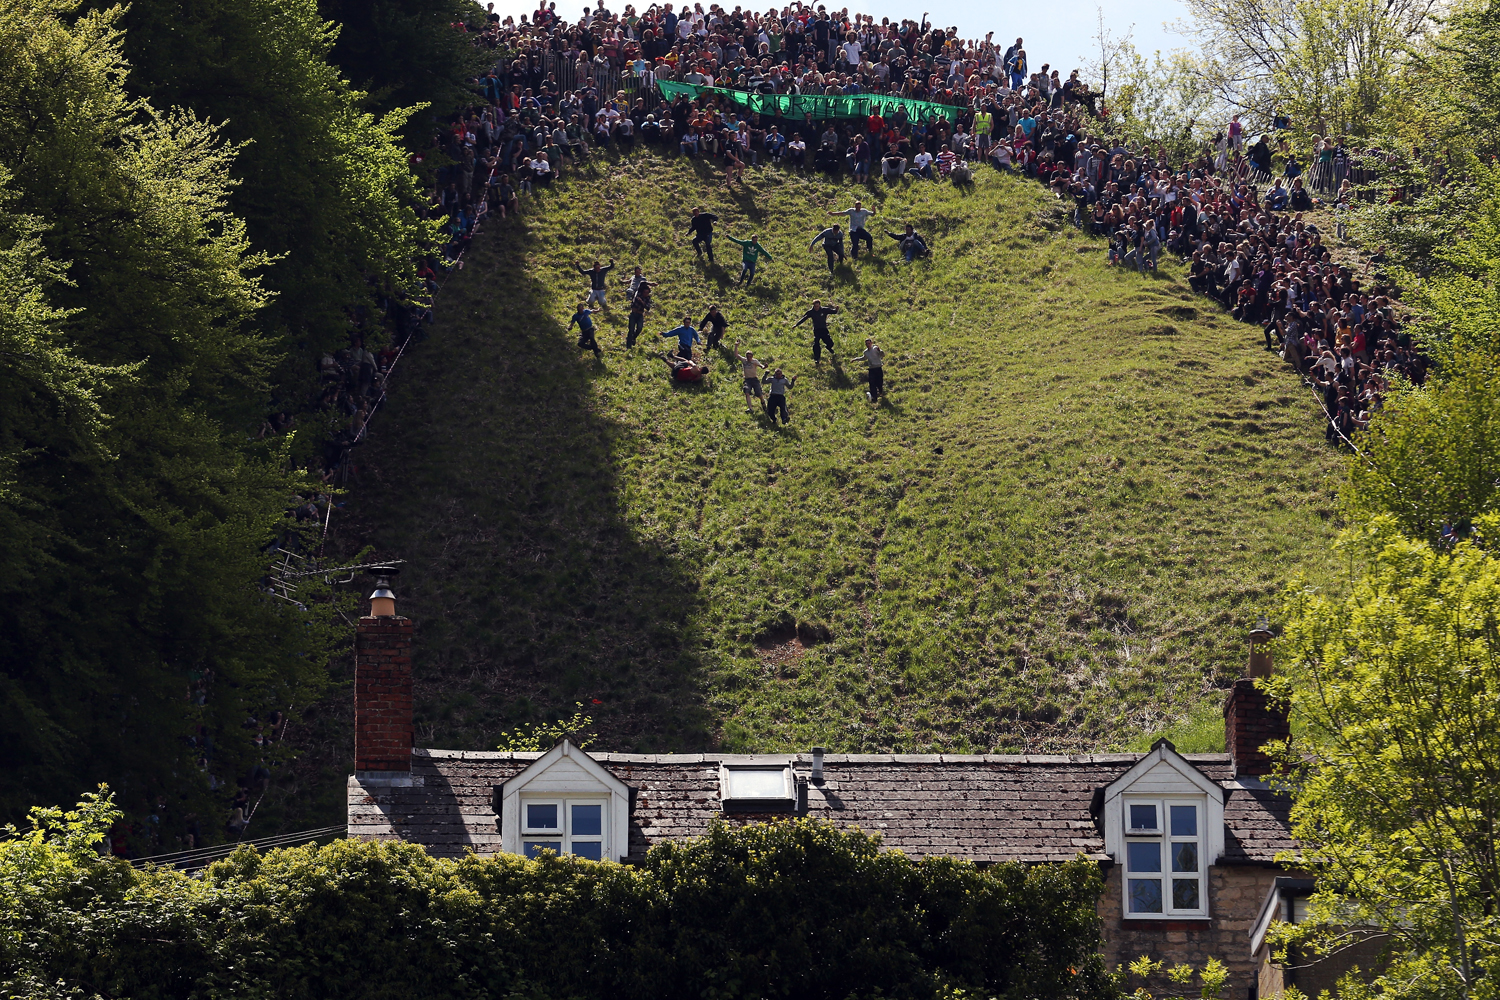 May 27, 2013. Contestants in the men's race chase a replica Double Gloucester Cheese down the steep gradient of Cooper's Hill during the annual Bank Holiday tradition of cheese-rolling in Brockworth, Gloucestershire, England.